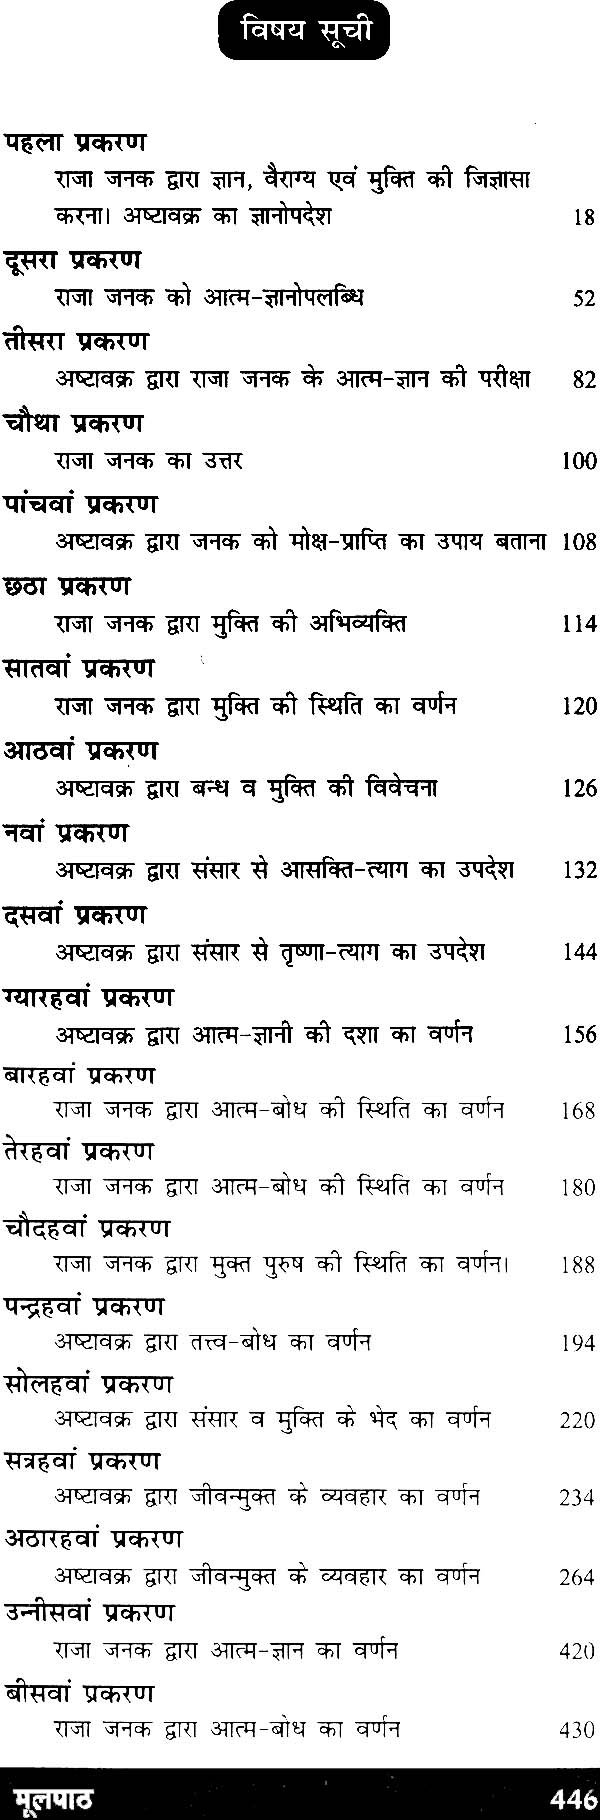 ashtavakra gita in hindi by nandlal dashora pdf free